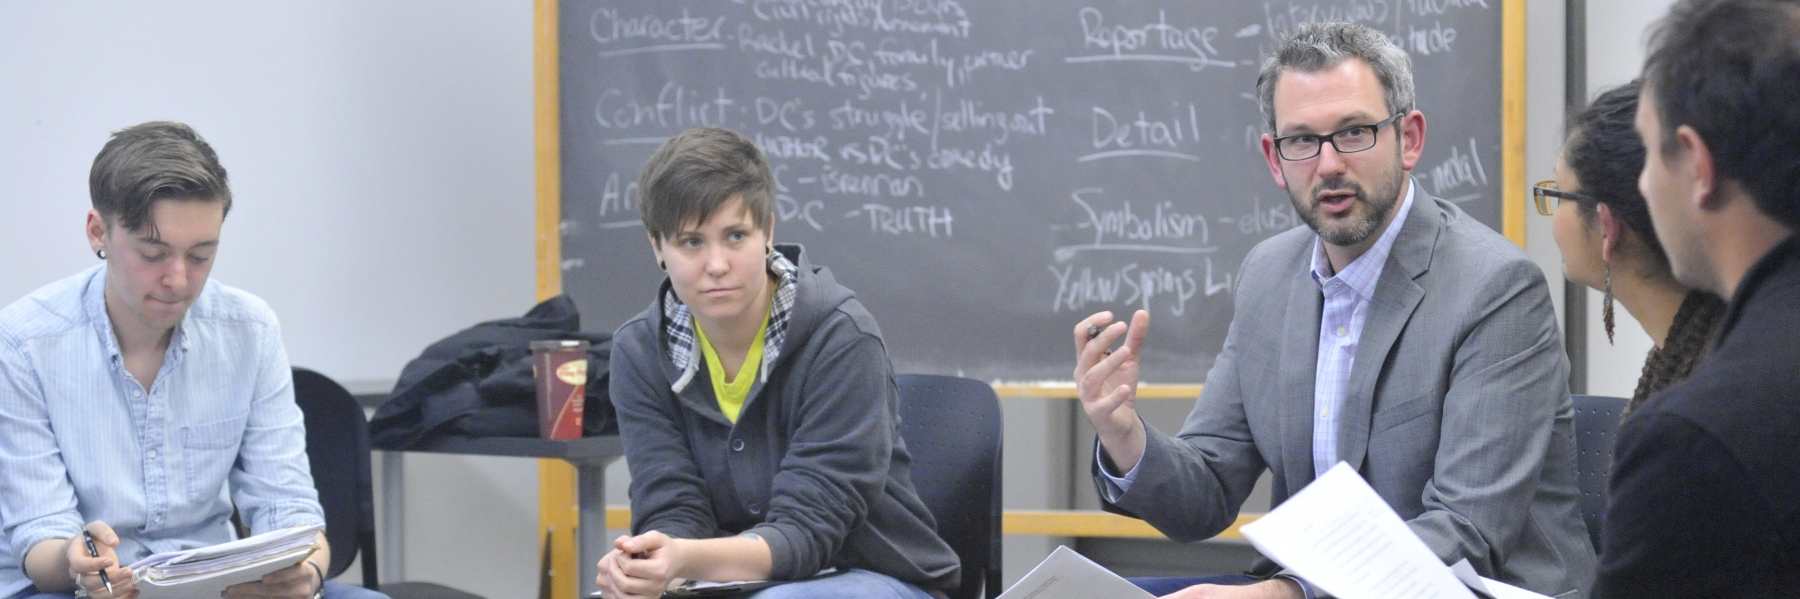 students in a creative writing class